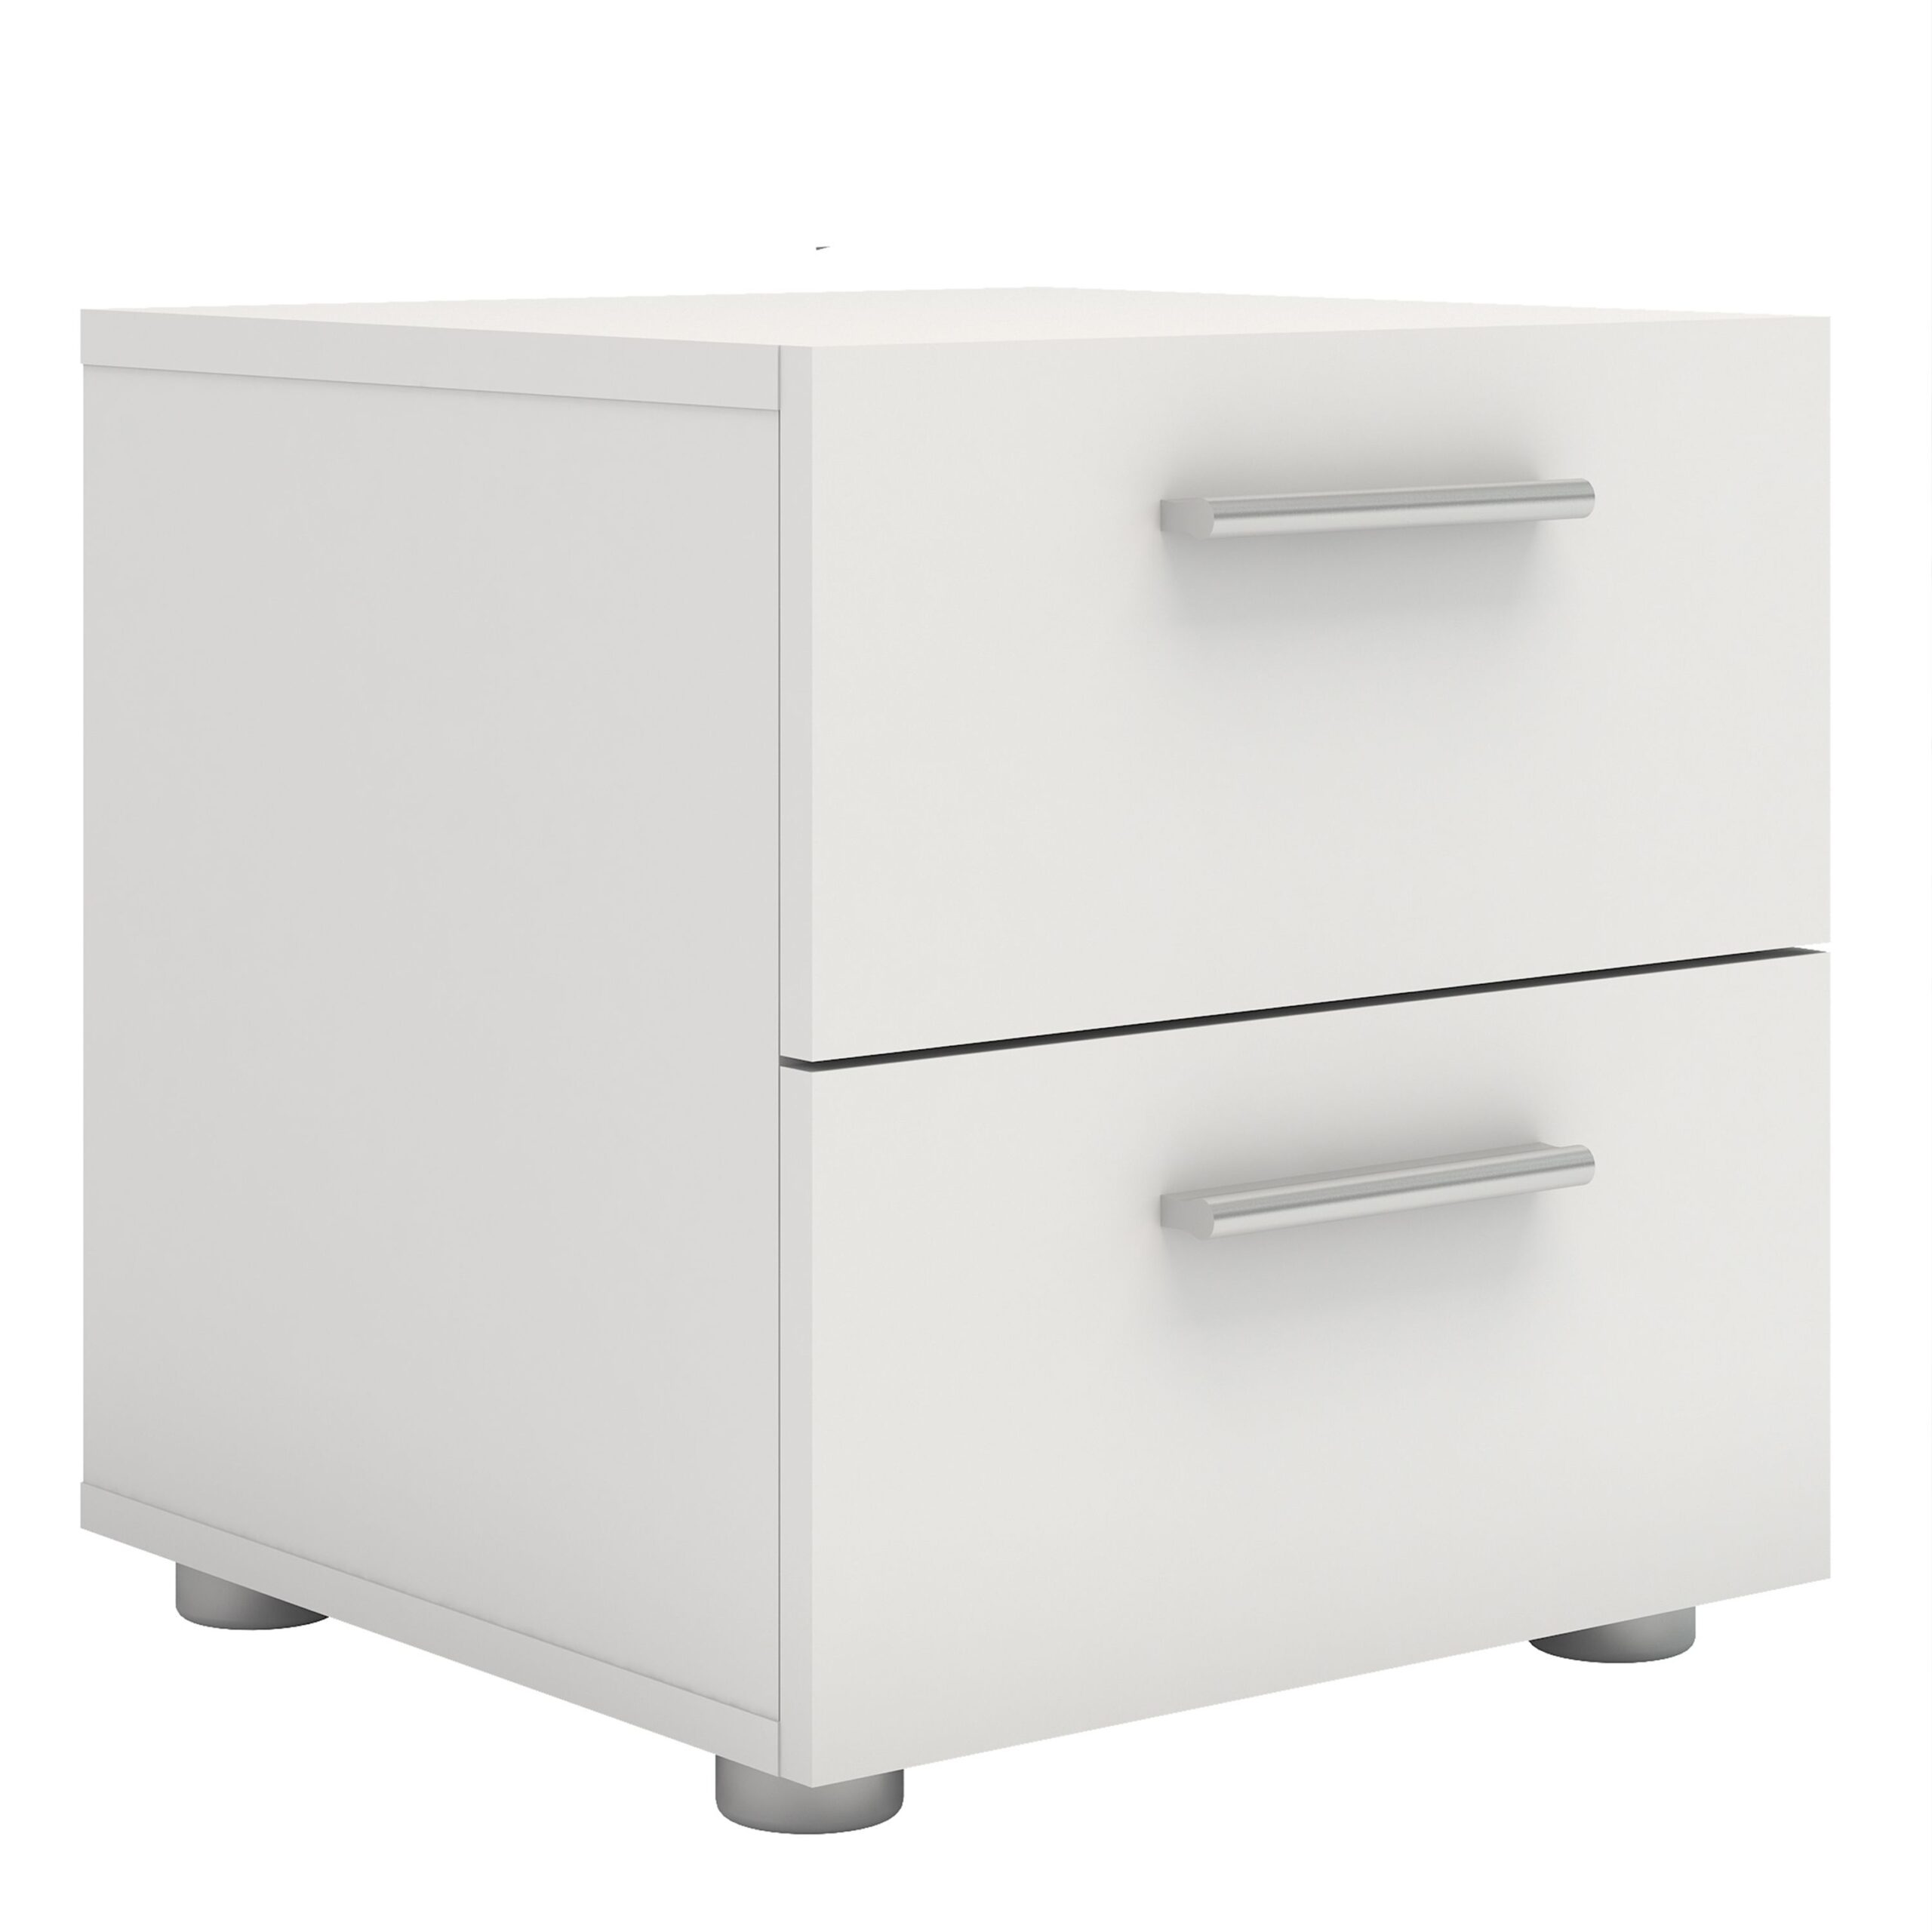 Peepo Bedside 2 Drawers in White